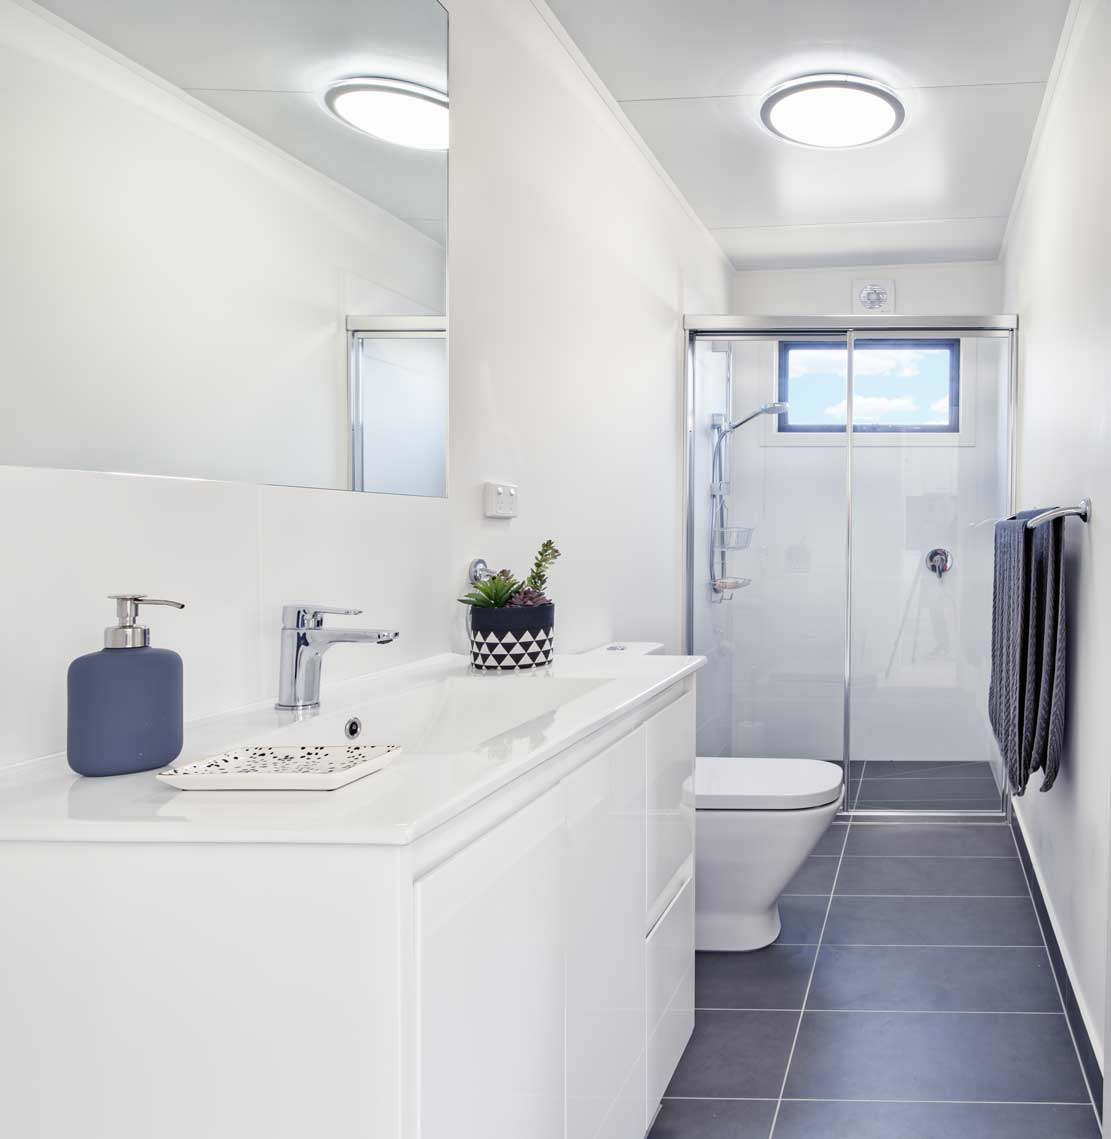 The Interior of the bathroom in on of our granny flats